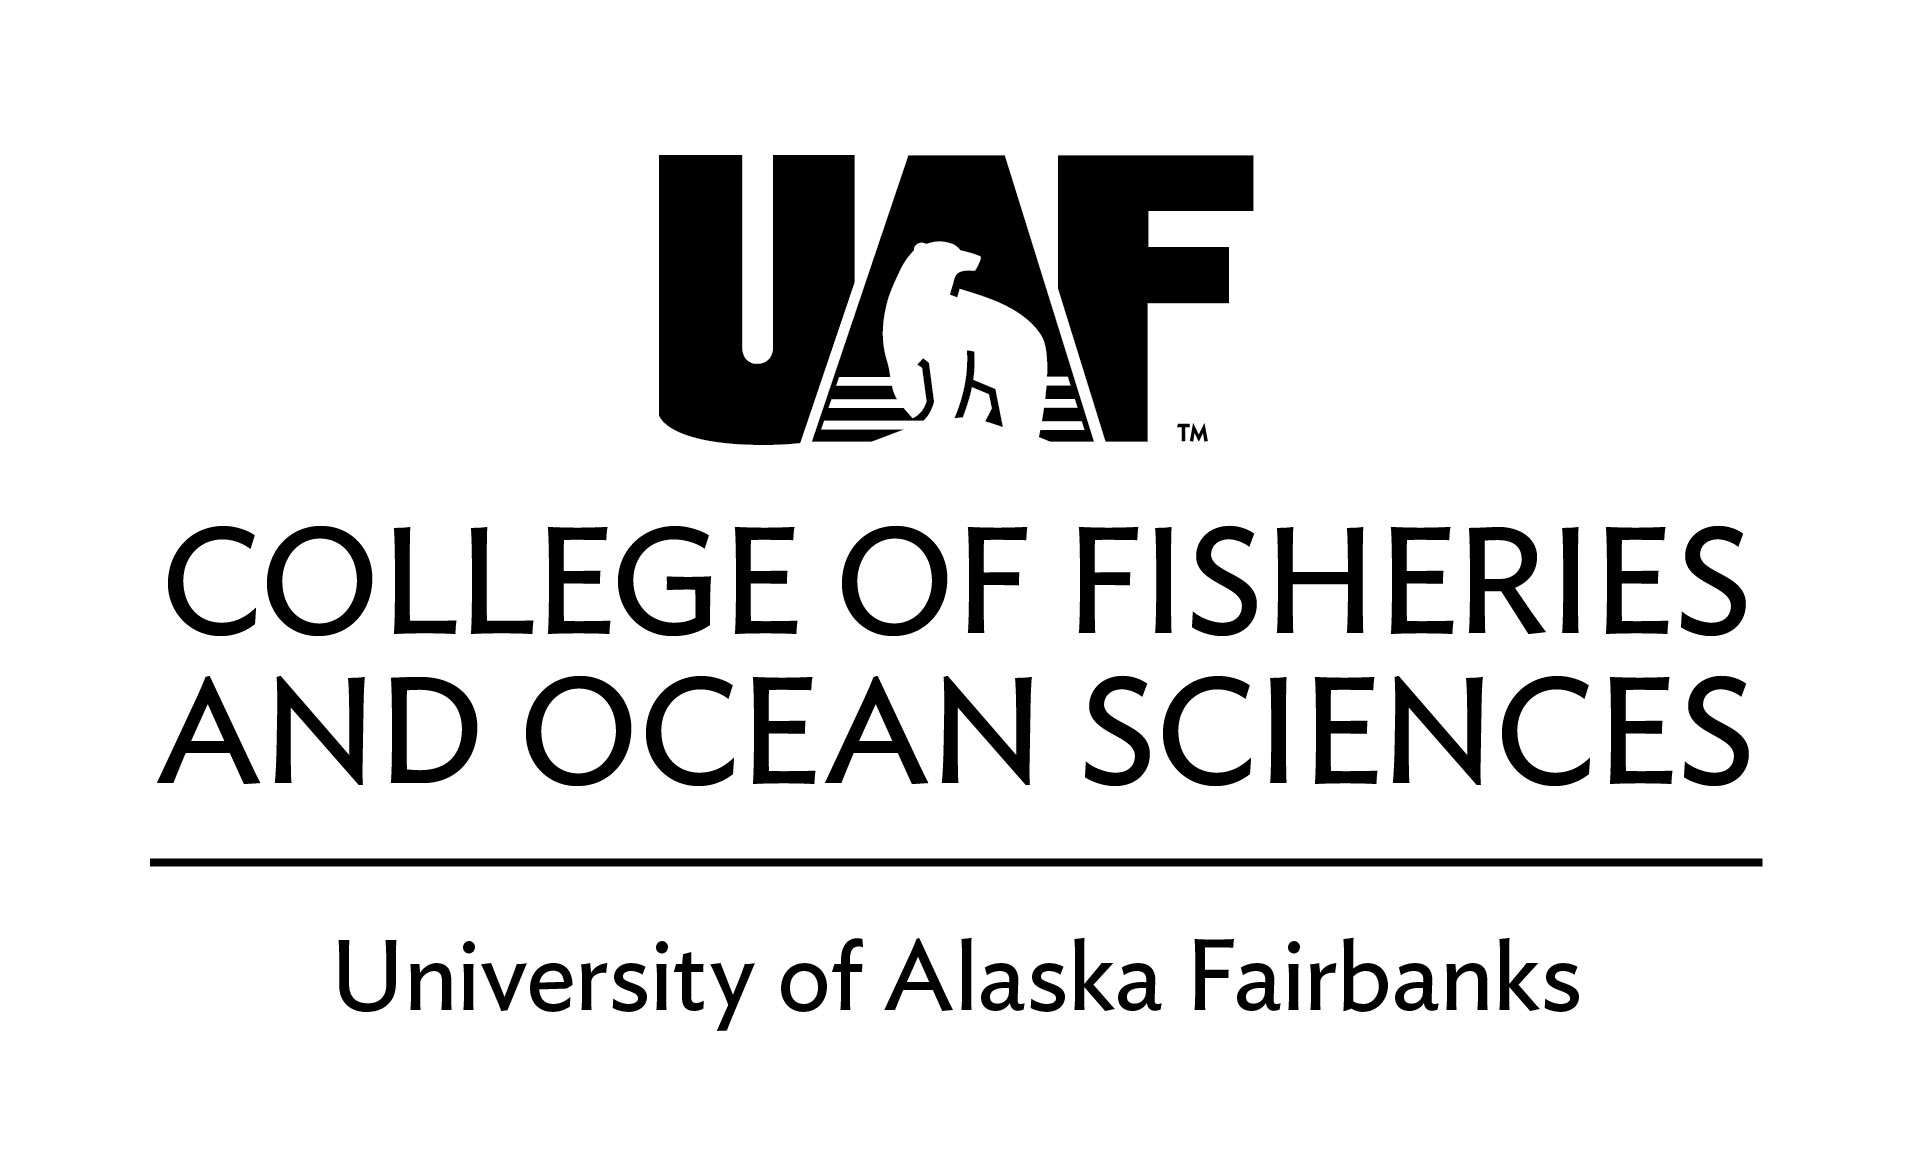 UAF College of Fisheries and Ocean Sciences - Black Horizontal logo